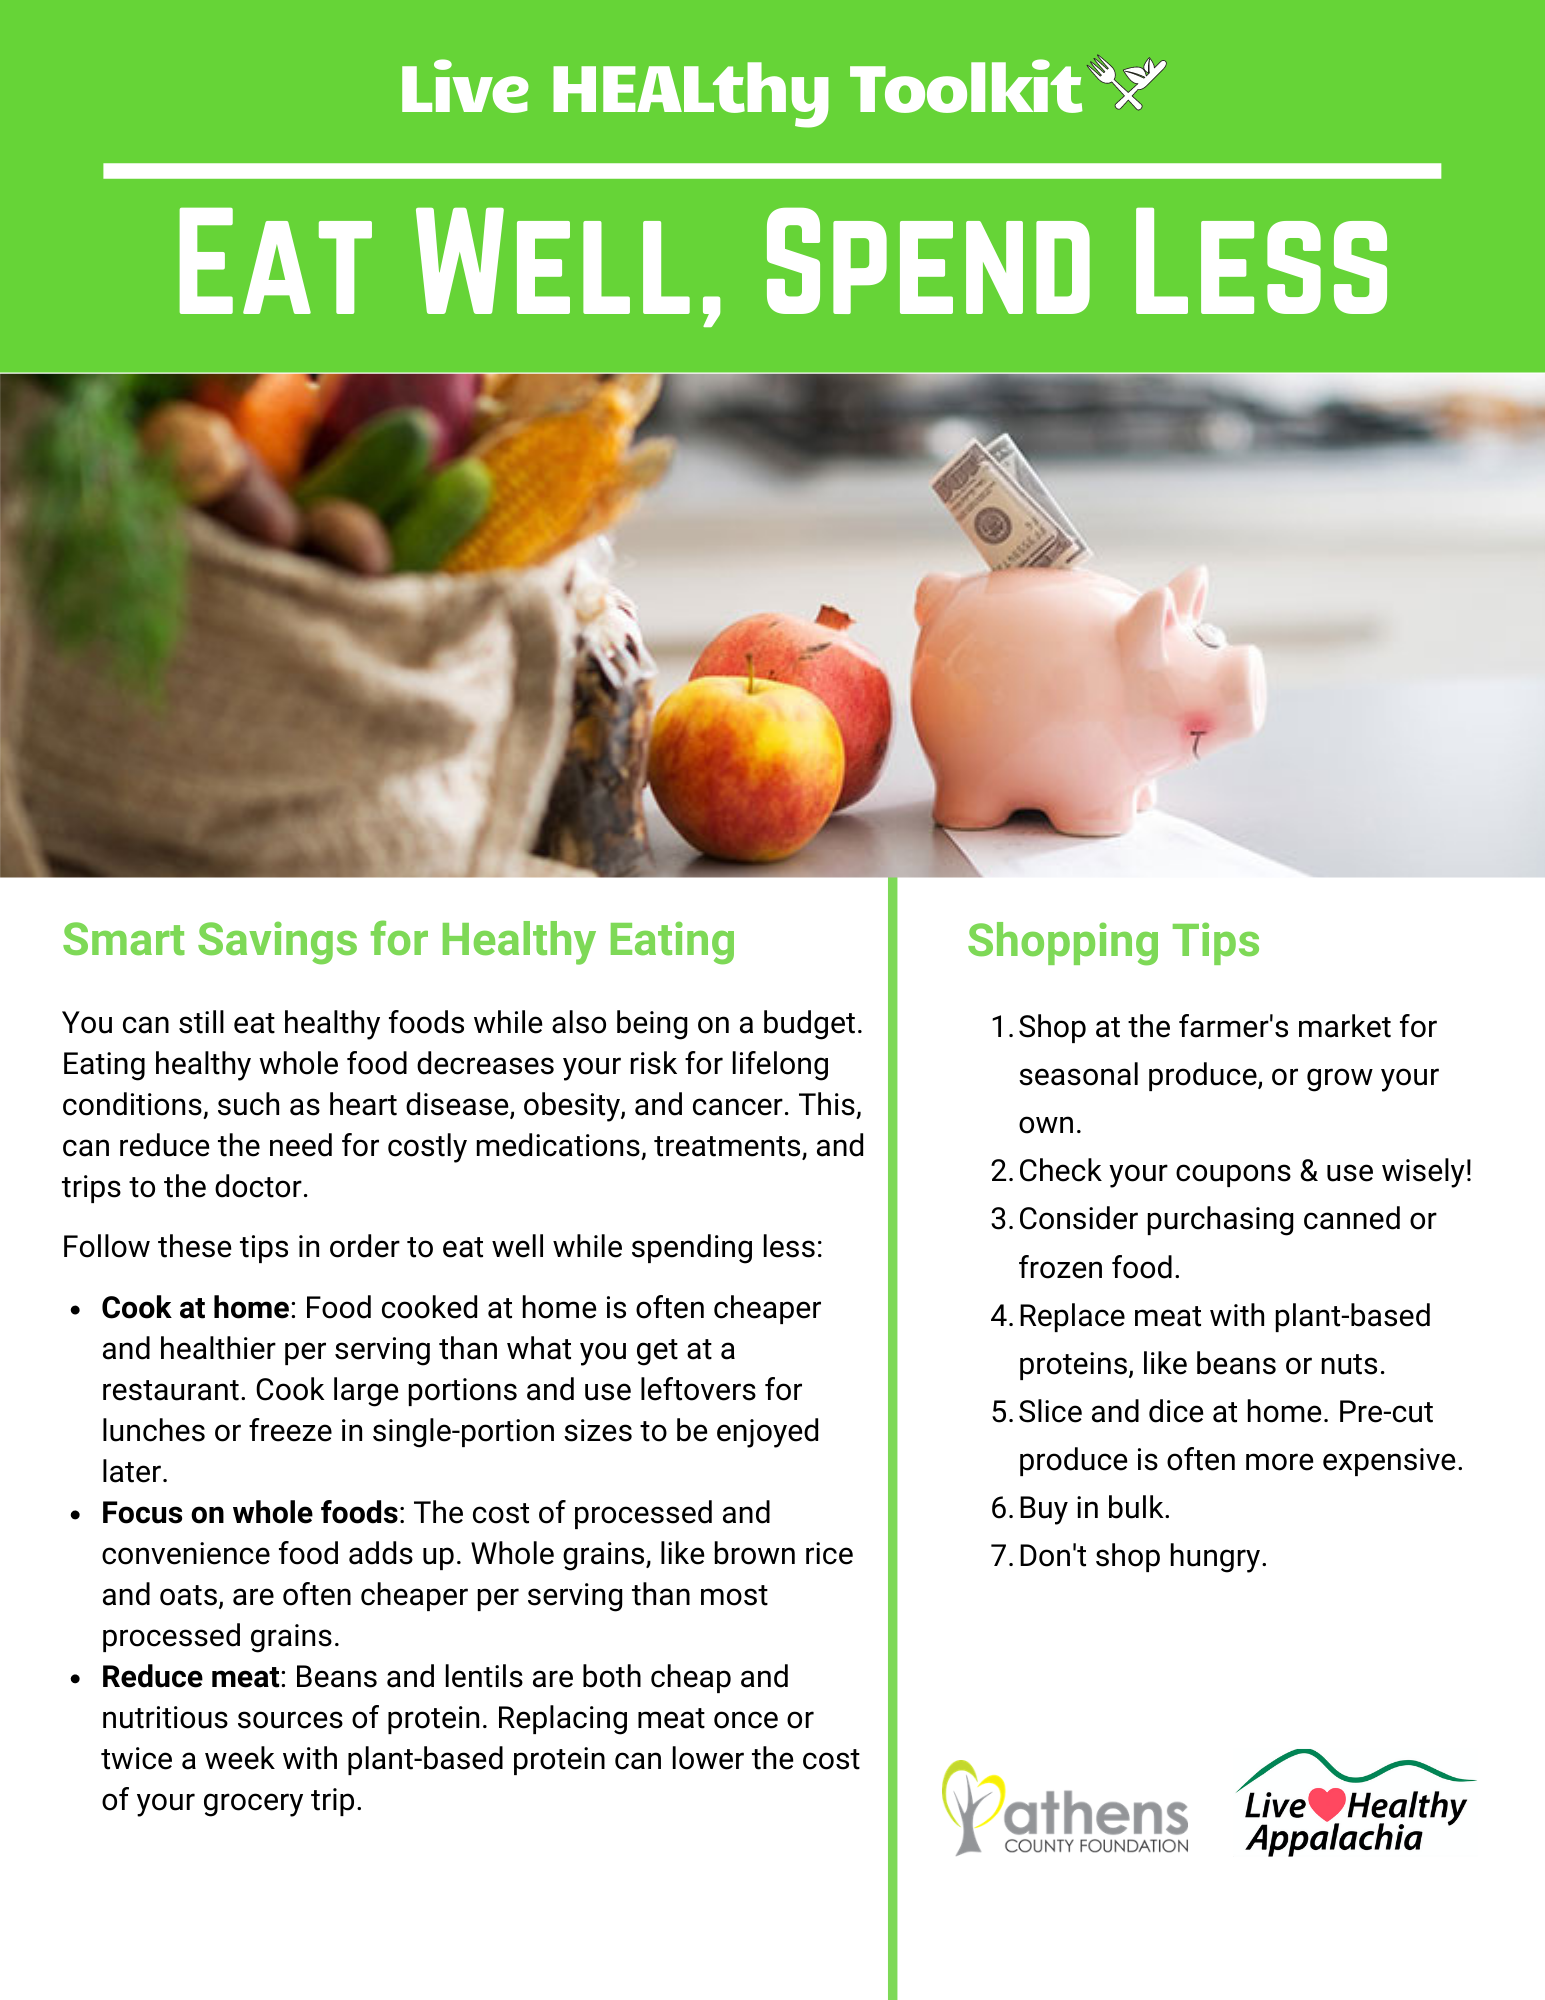 Eat Well, Spend Less